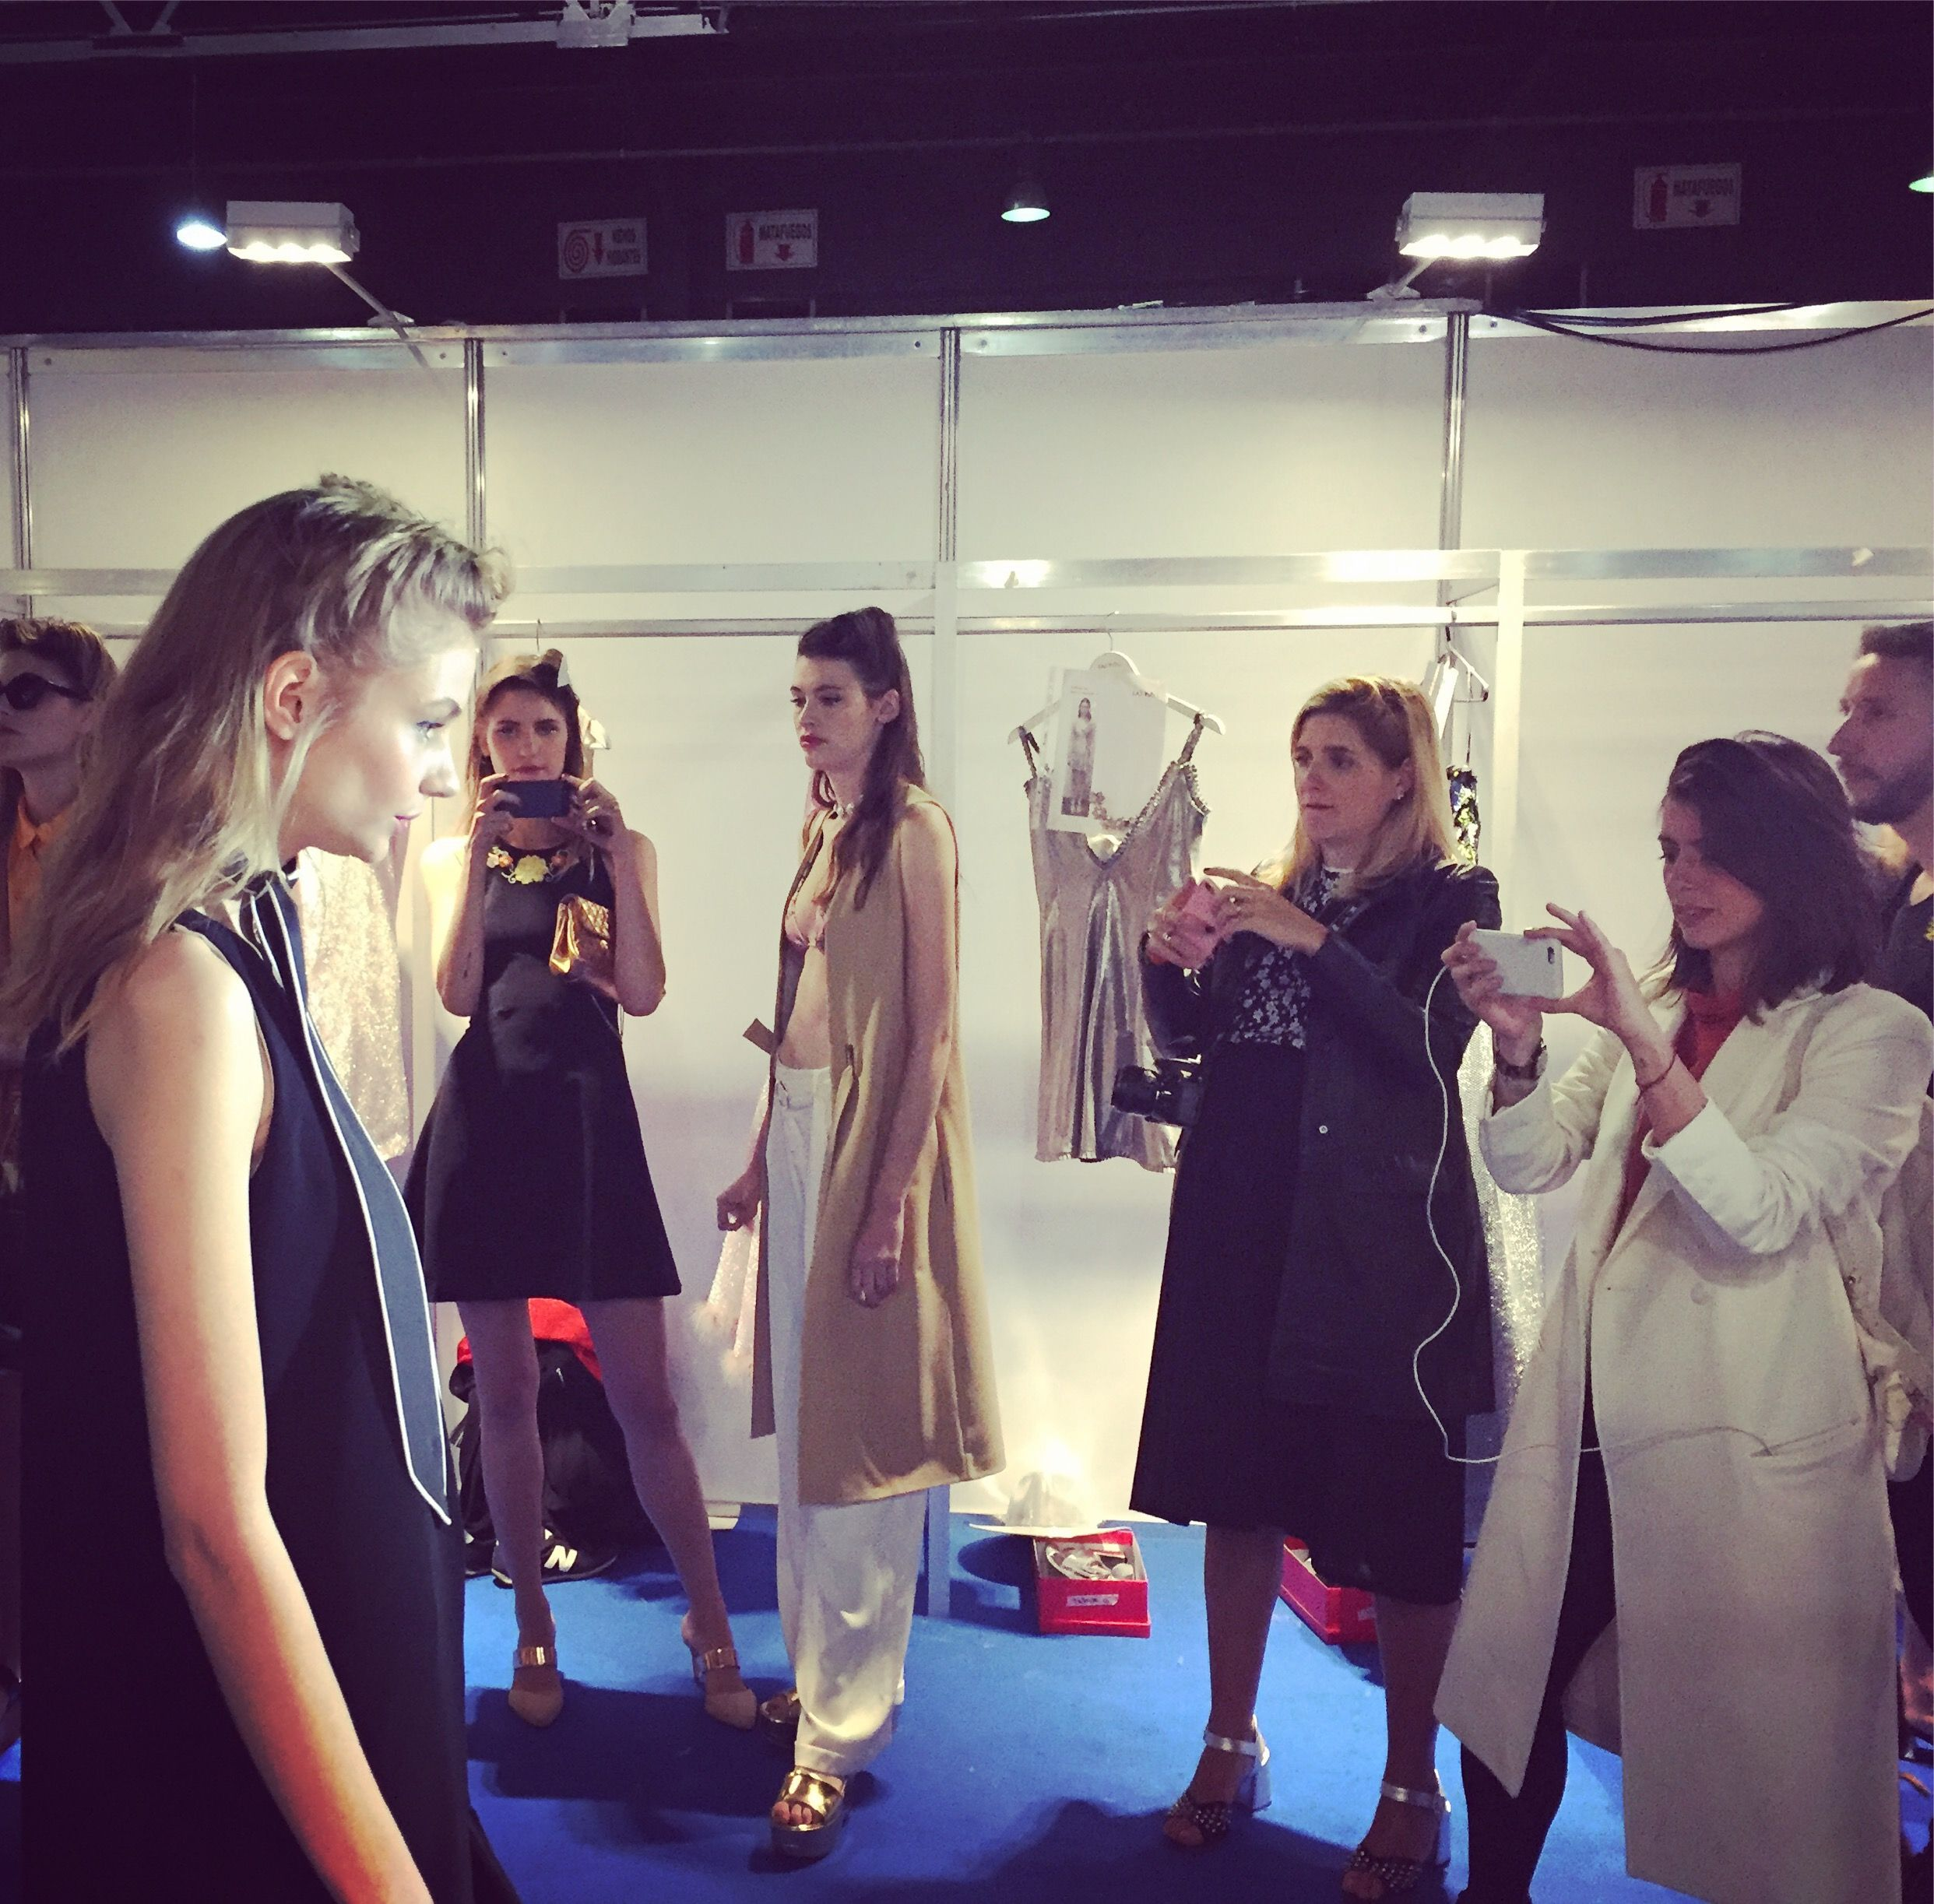 At the back of the fashion shows! #work #work #work